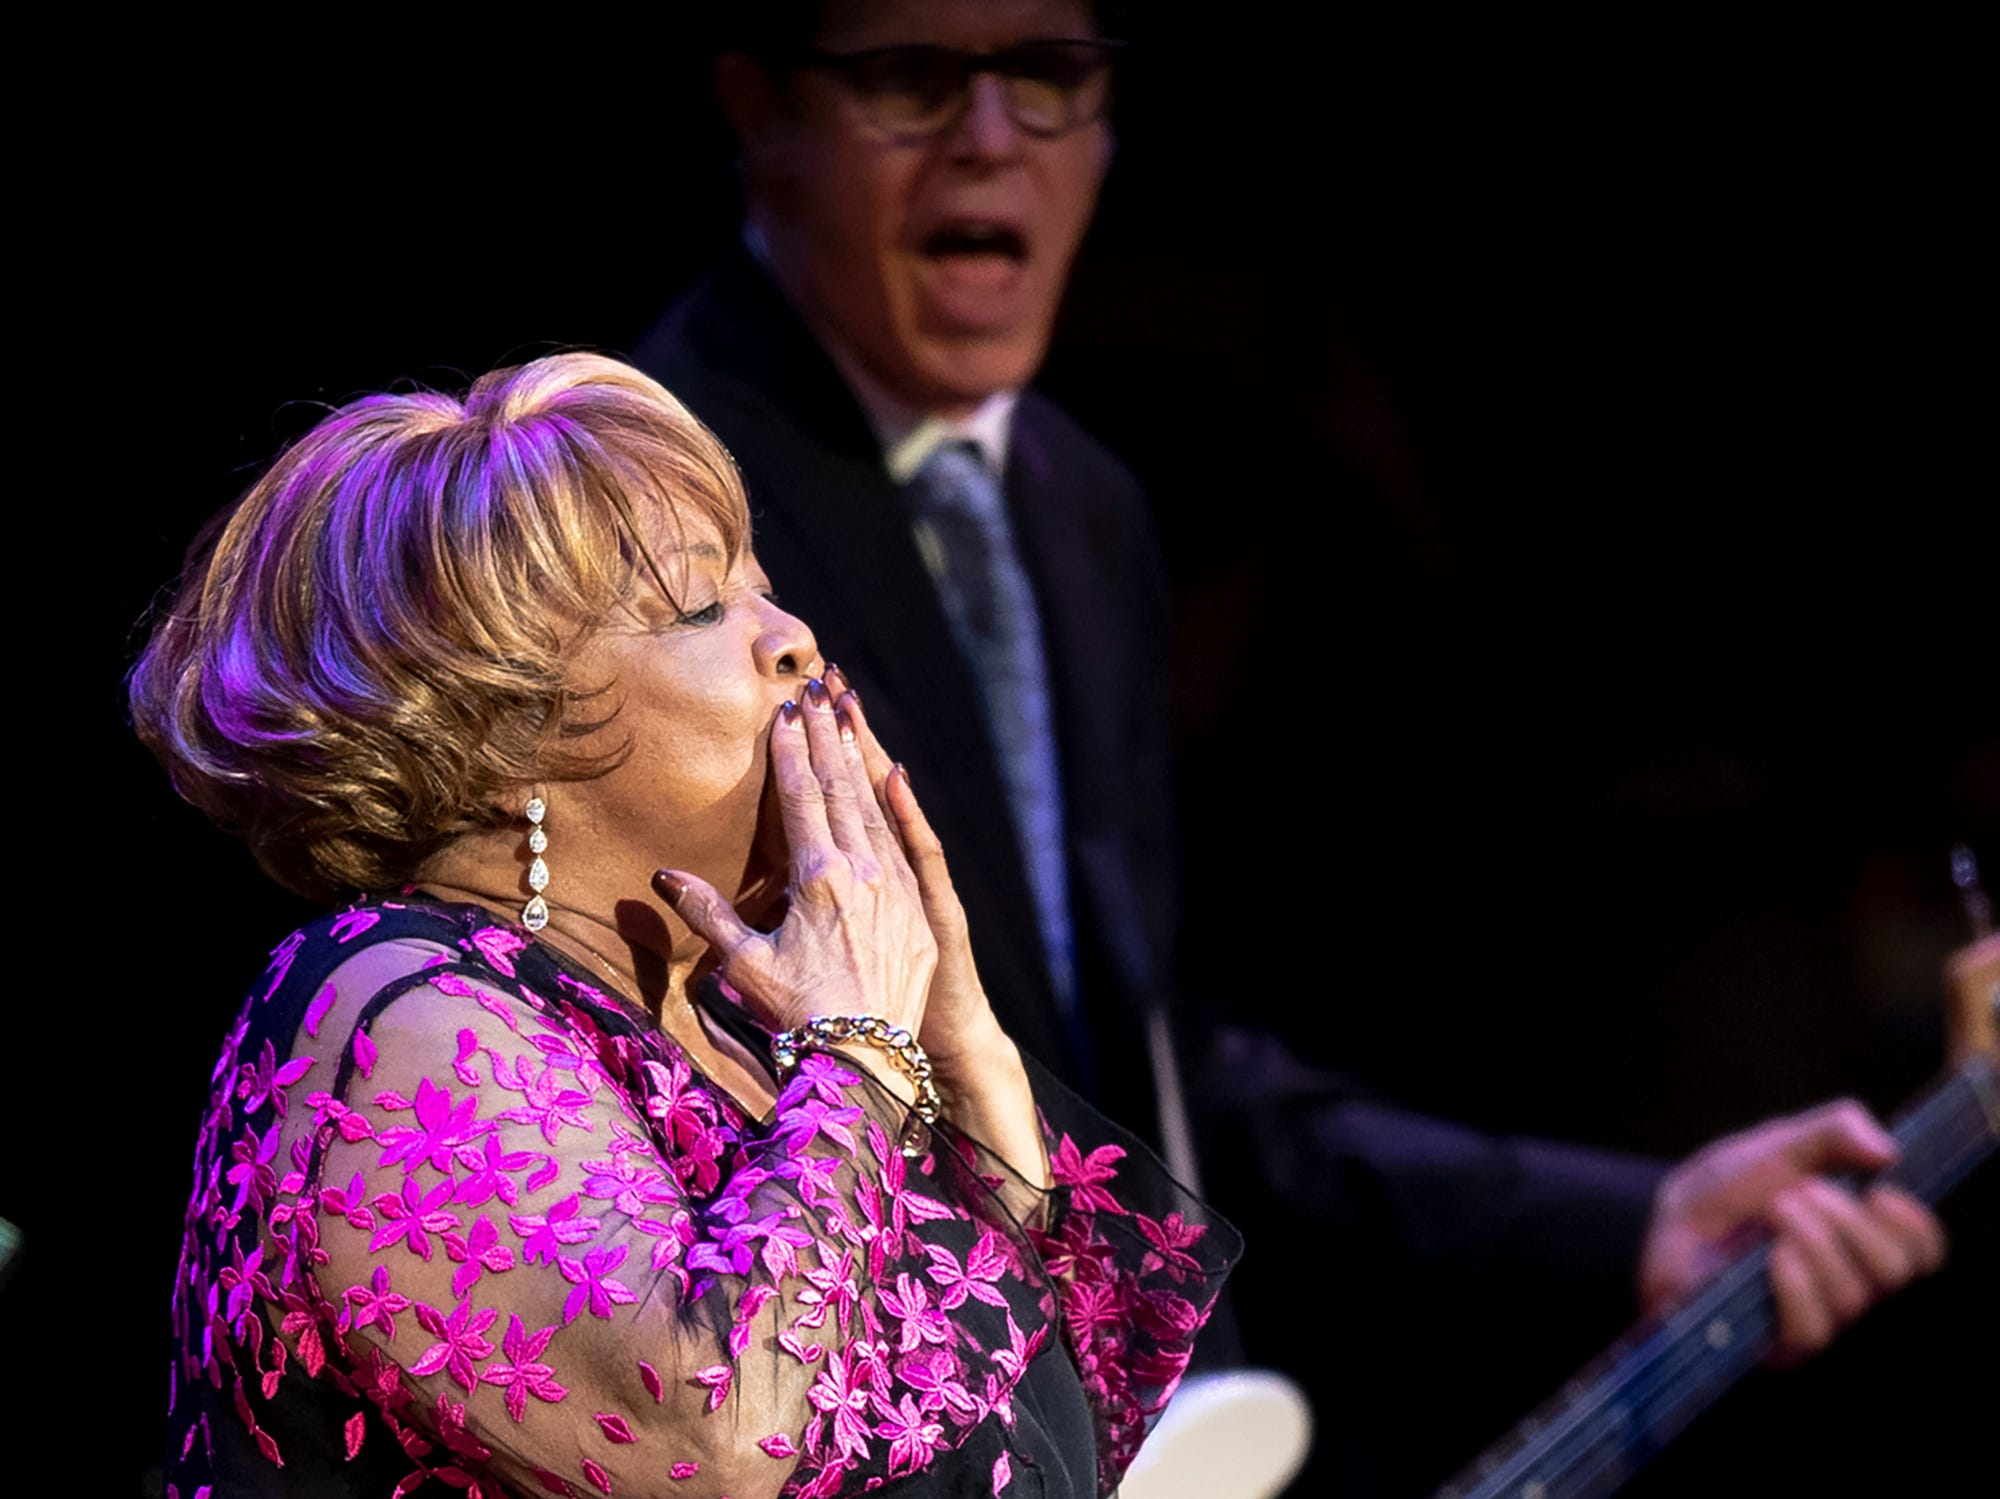 Mavis Staples performs during the Mavis and Friends concert at the Ryman Auditorium in Nashville, Tenn., Wednesday, May 15, 2019.